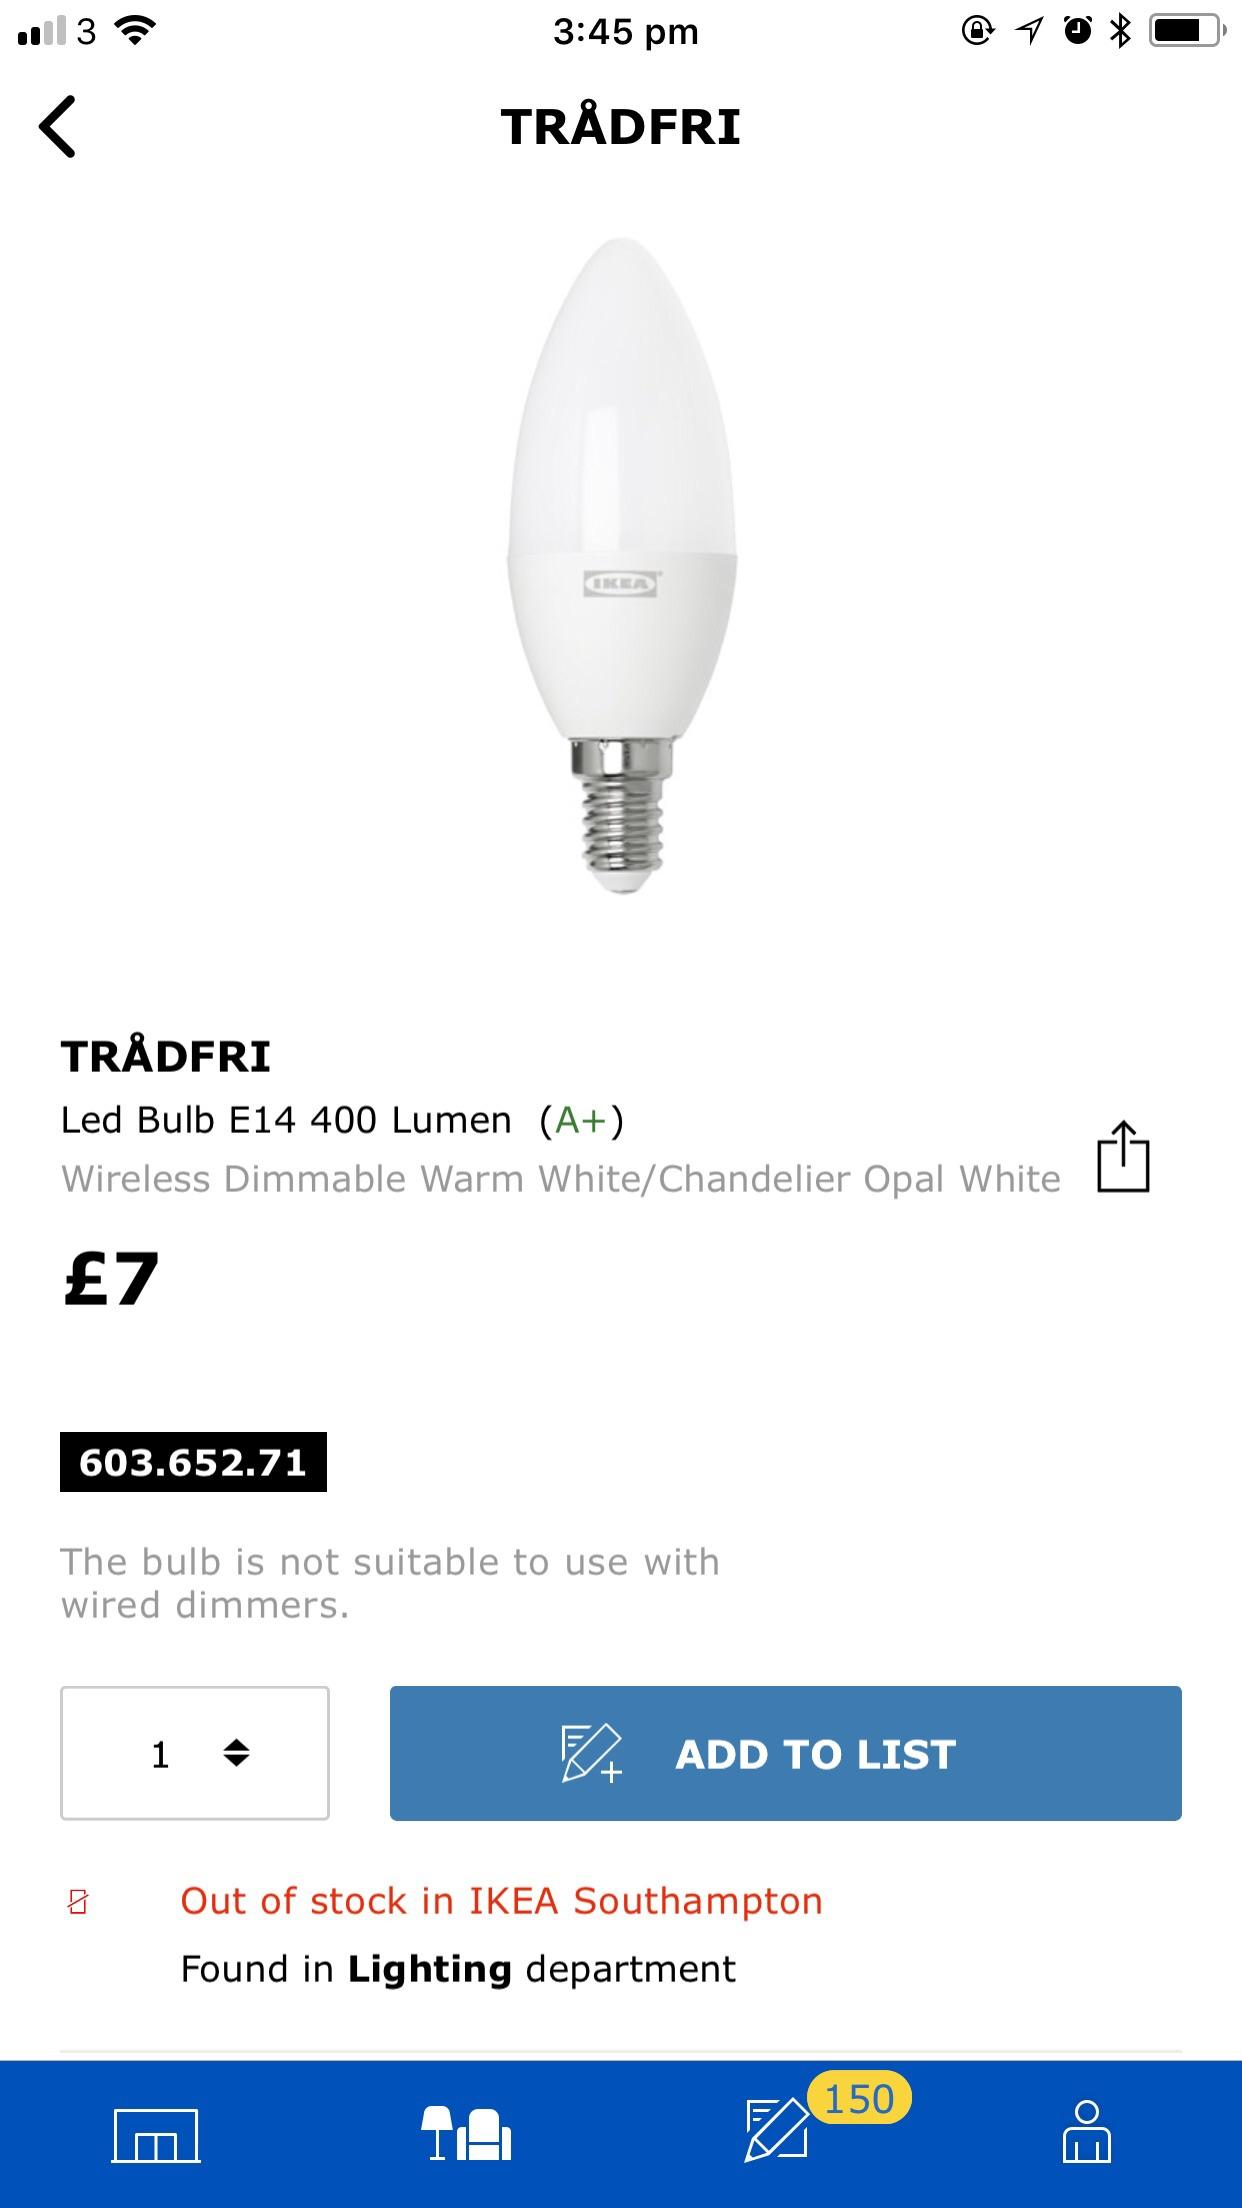 Ikea Tradfri Anyone Know What Happened To This Bulb It S Been Out Of Stock For